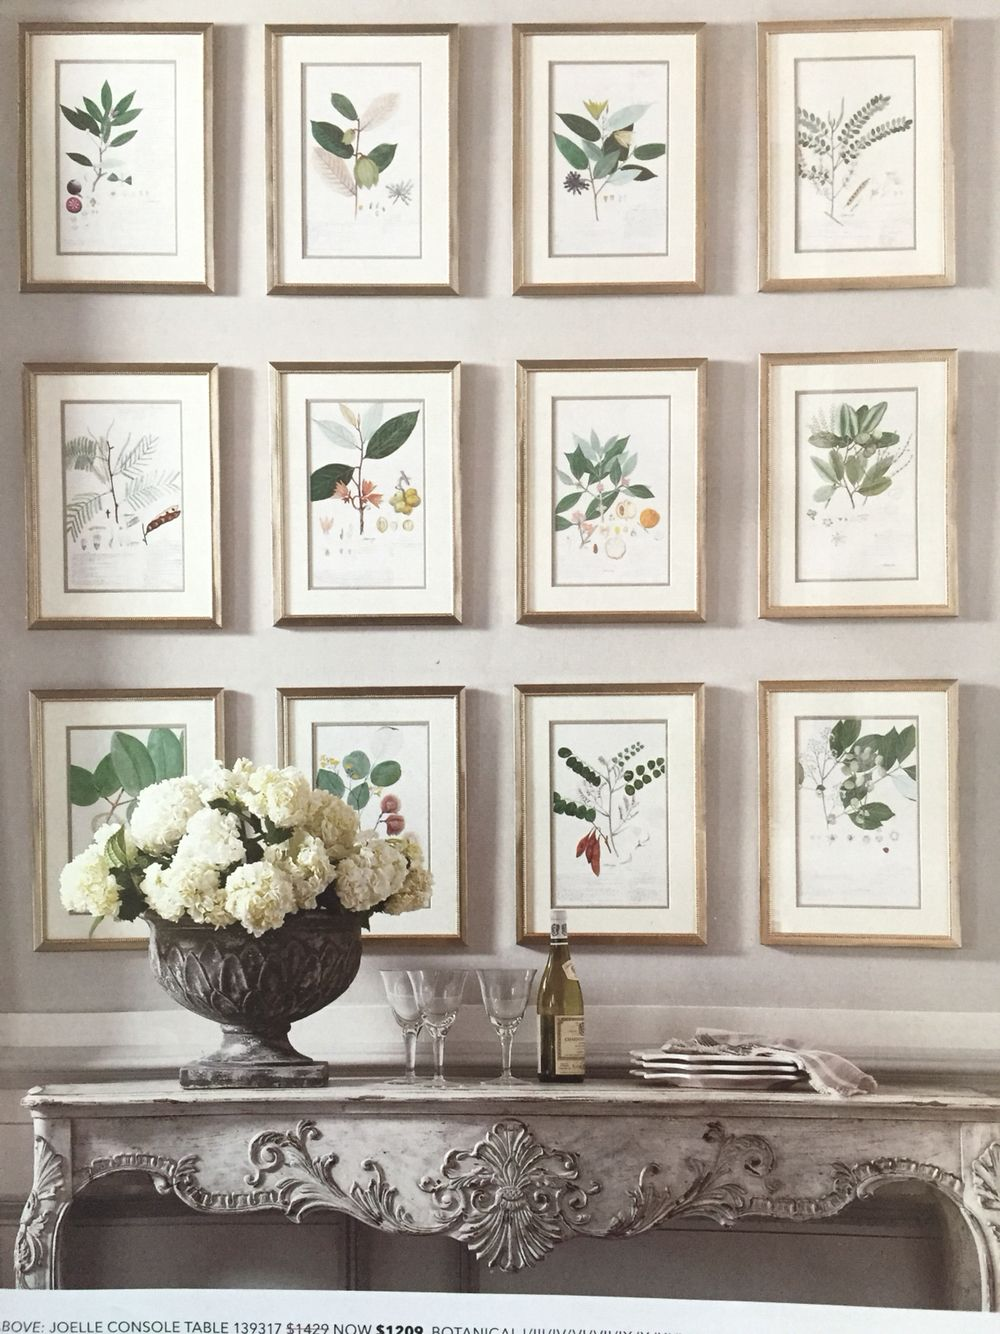 Gallery Wall Of Matted Botanical Prints In Gold Frames Original Image From Ethan Allen Catalogue